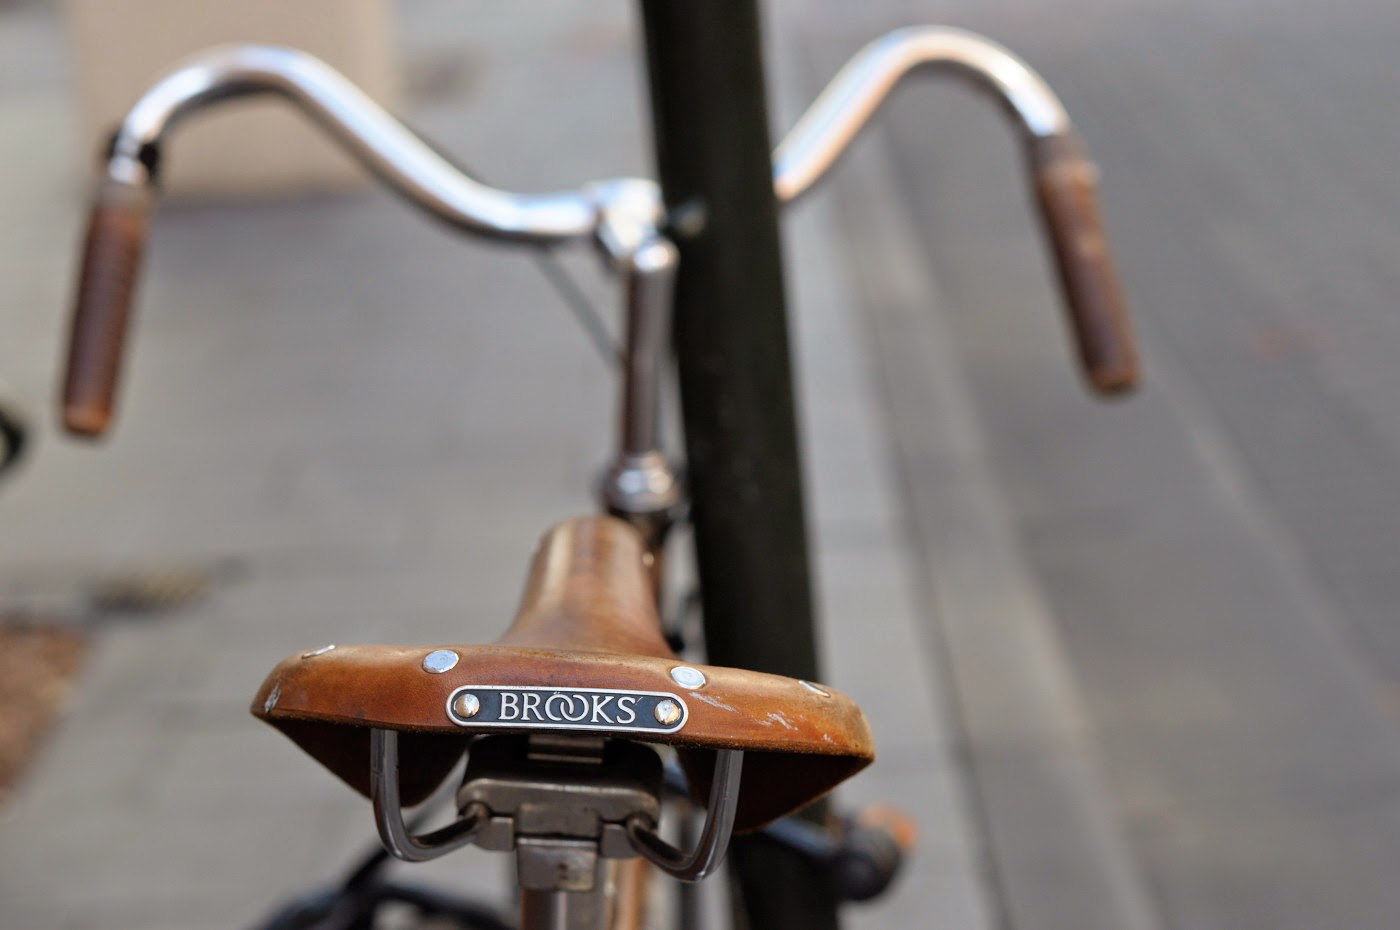 dia-compe, soma, brooks, fender, tim macauley, the biketorialist, vintage, frame, bespoke, custom, e